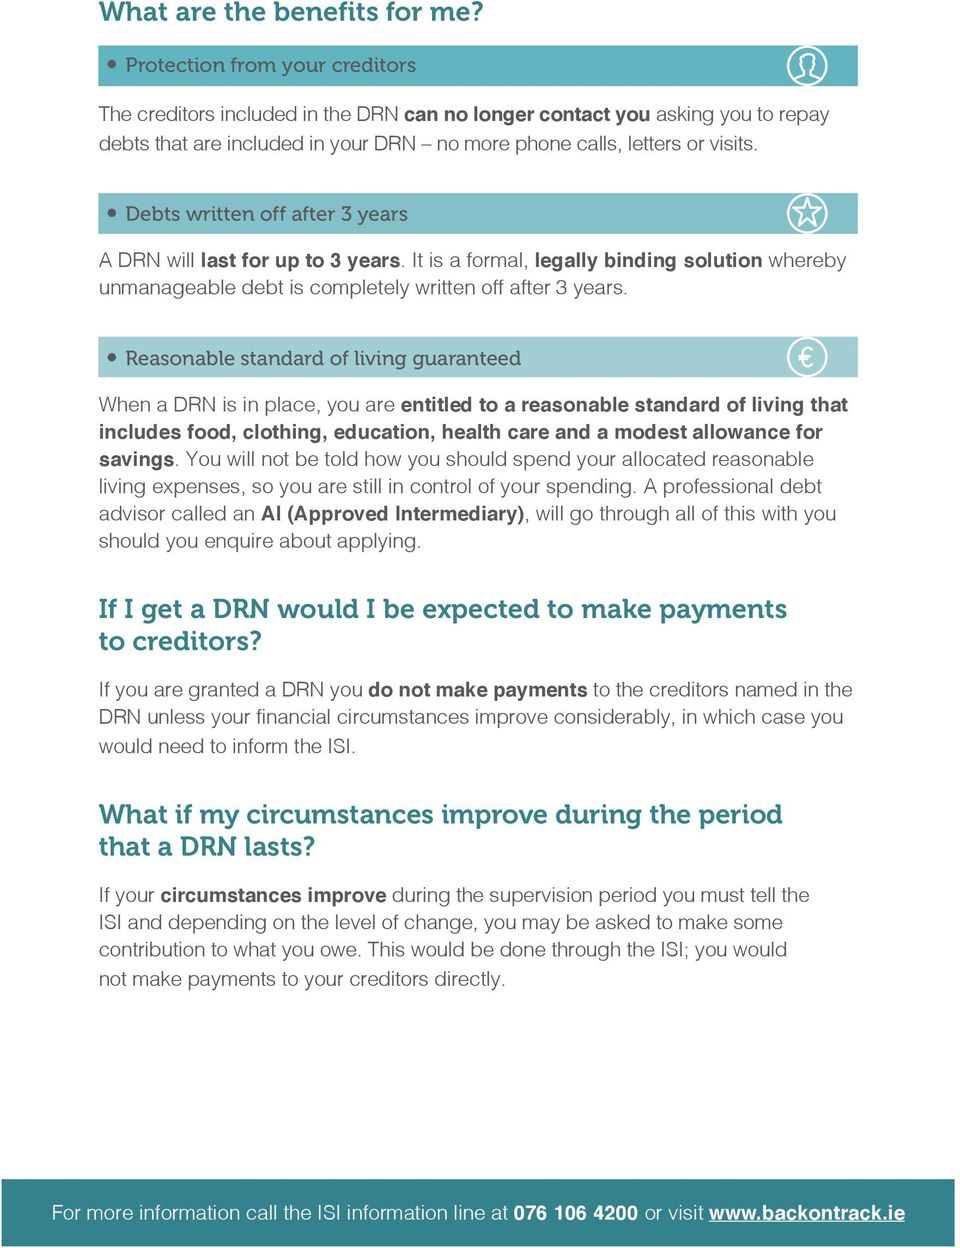 Debts written off after 3 years A DRN will last for up to 3 years. It is a formal, legally binding solution whereby unmanageable debt is completely written off after 3 years.